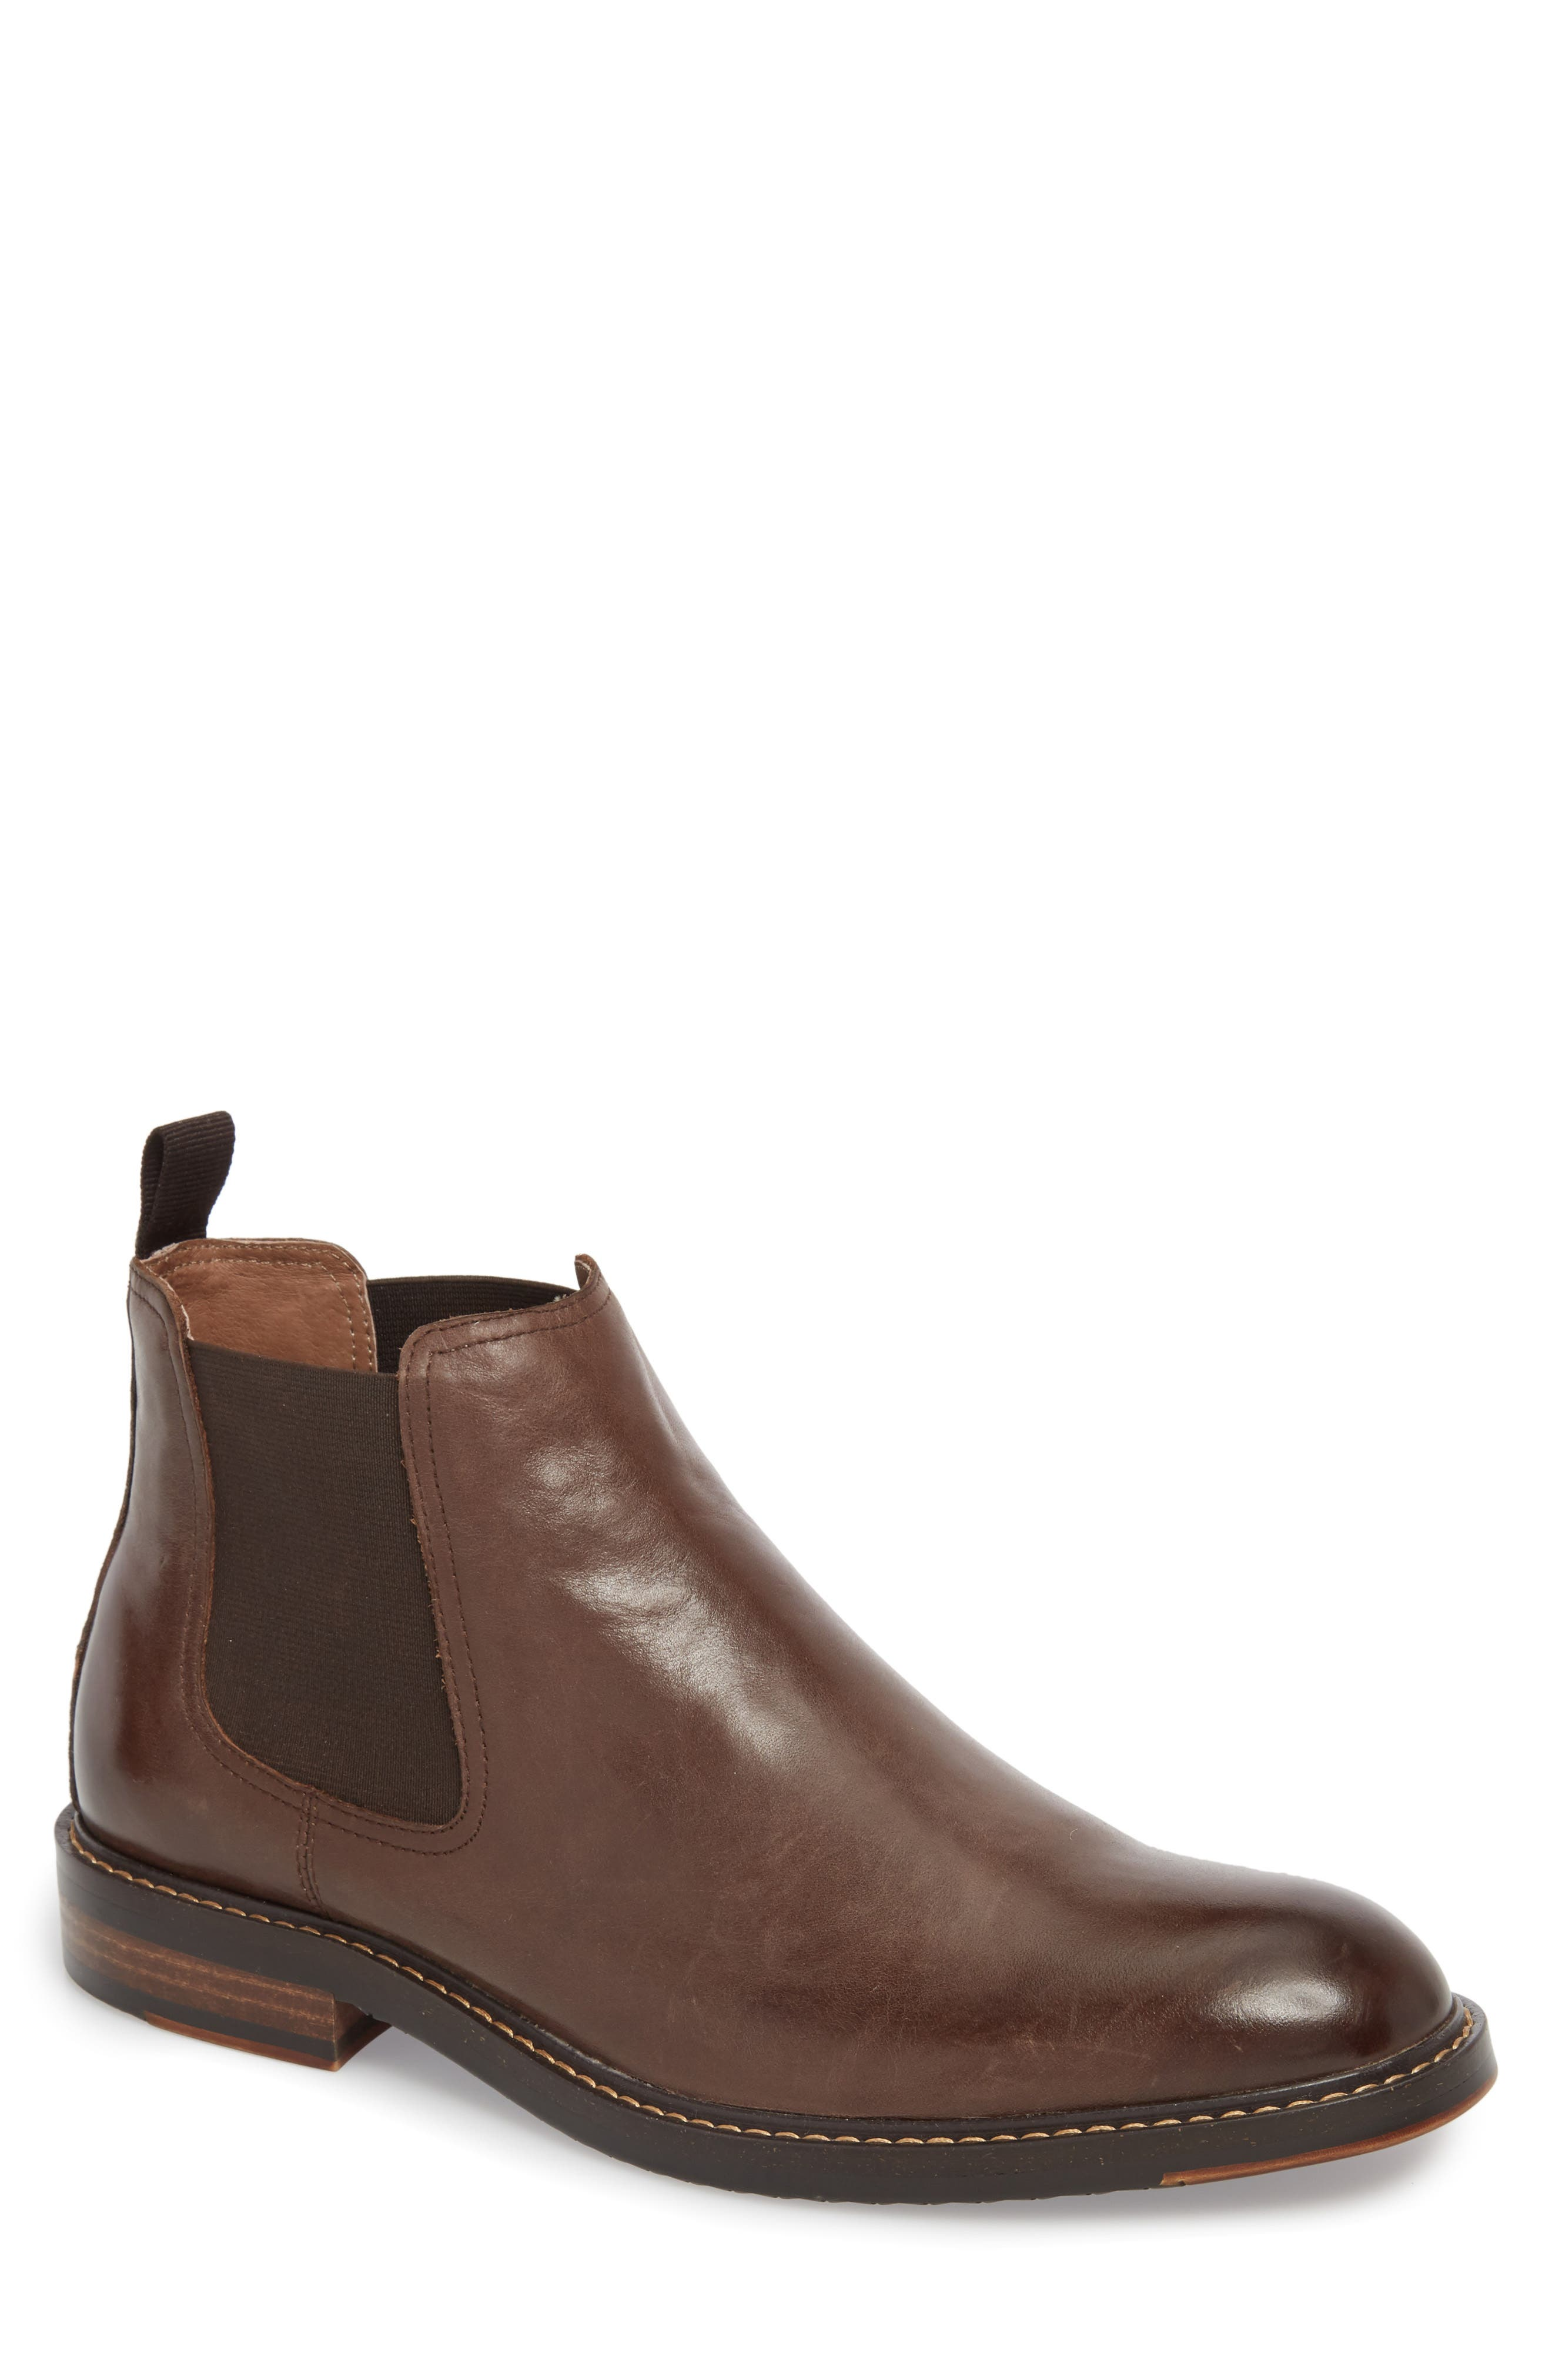 Brooks Chelsea Boot,                         Main,                         color, BROWN LEATHER